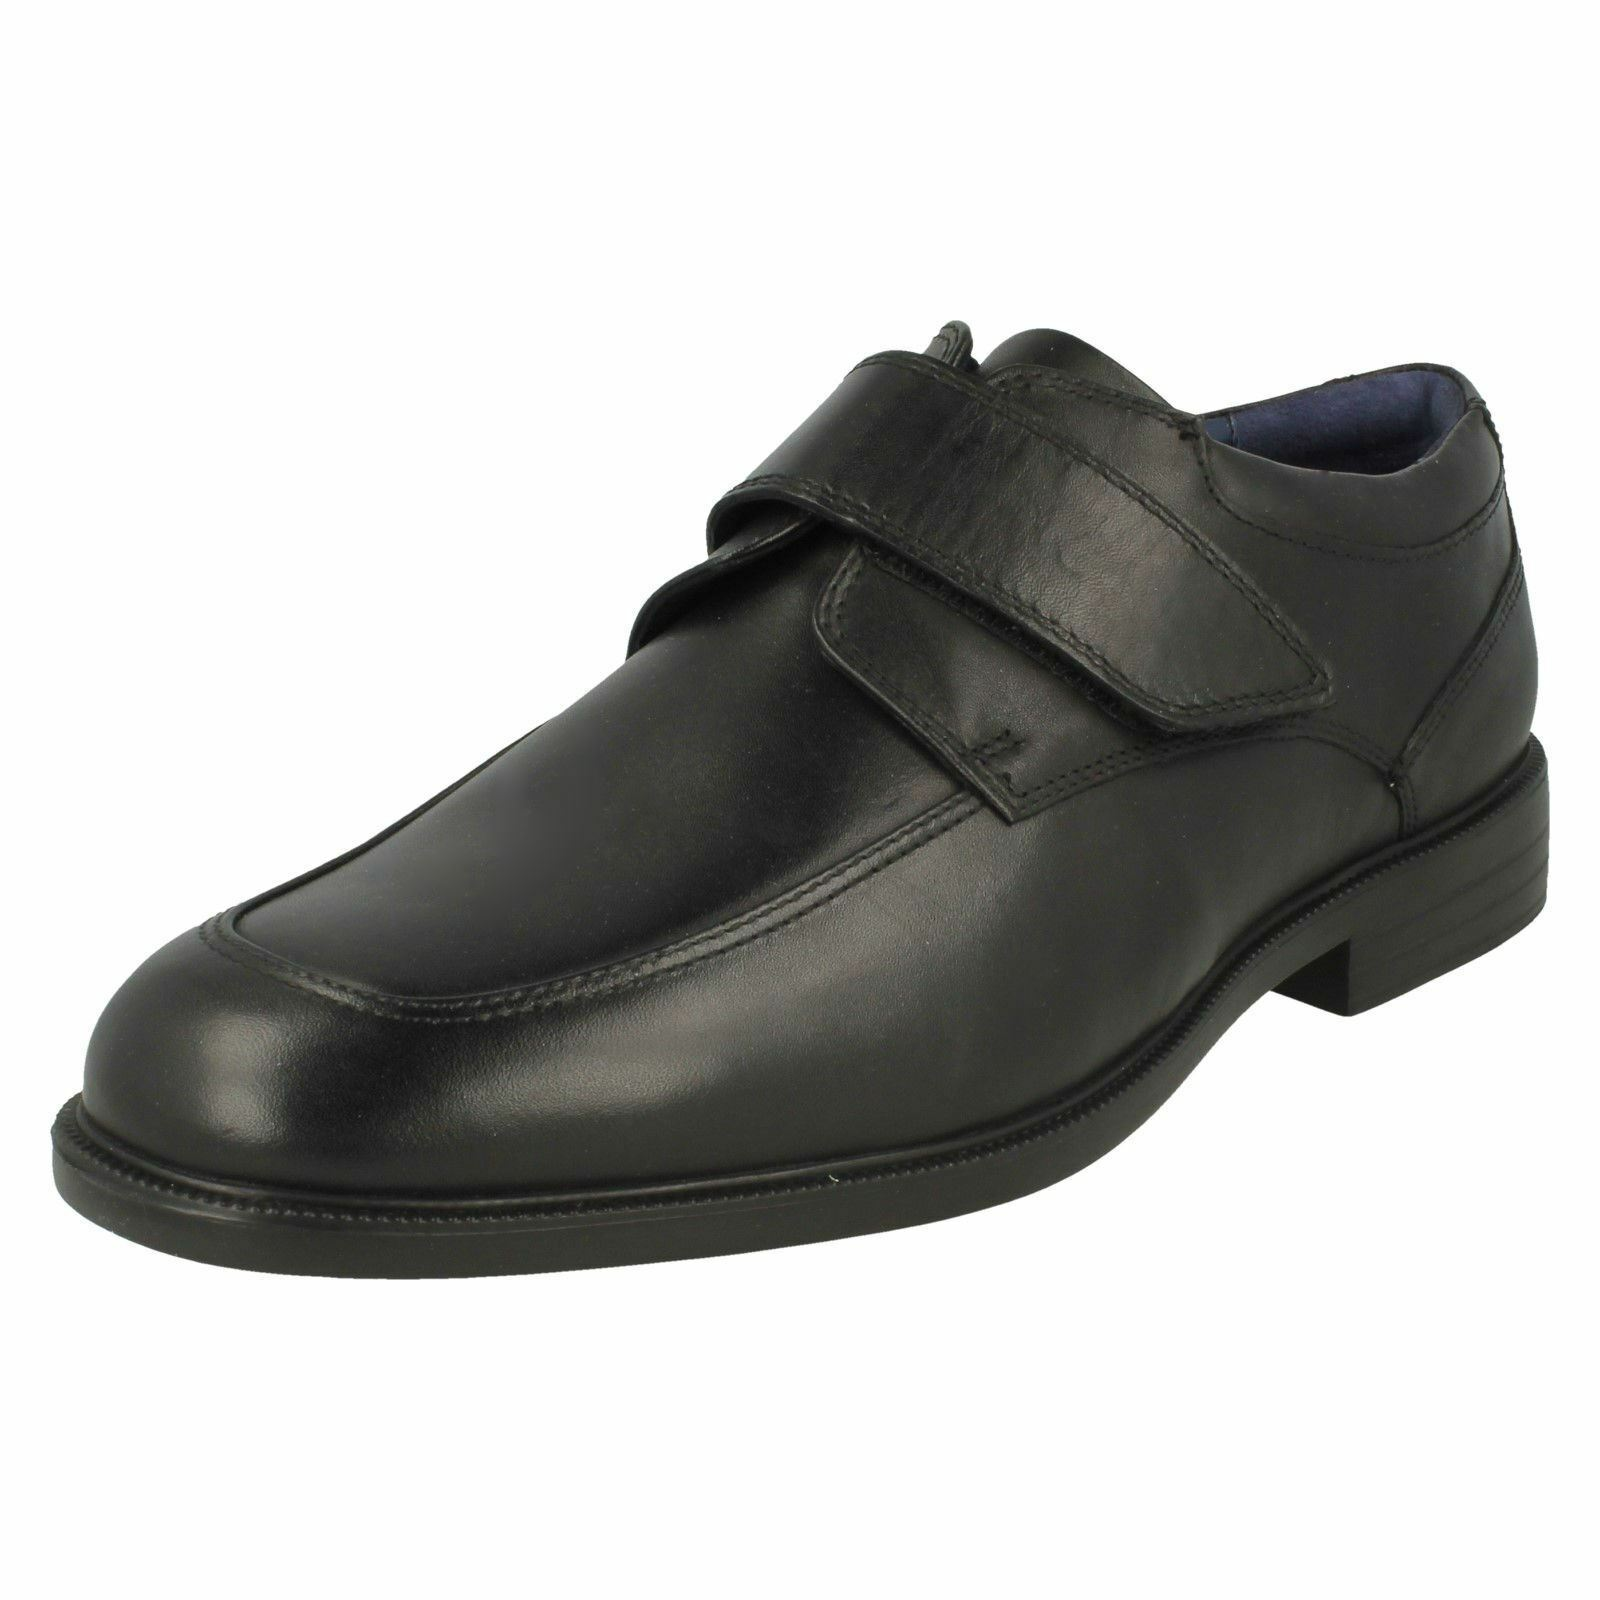 Padders Chaussures Homme ' Brent '